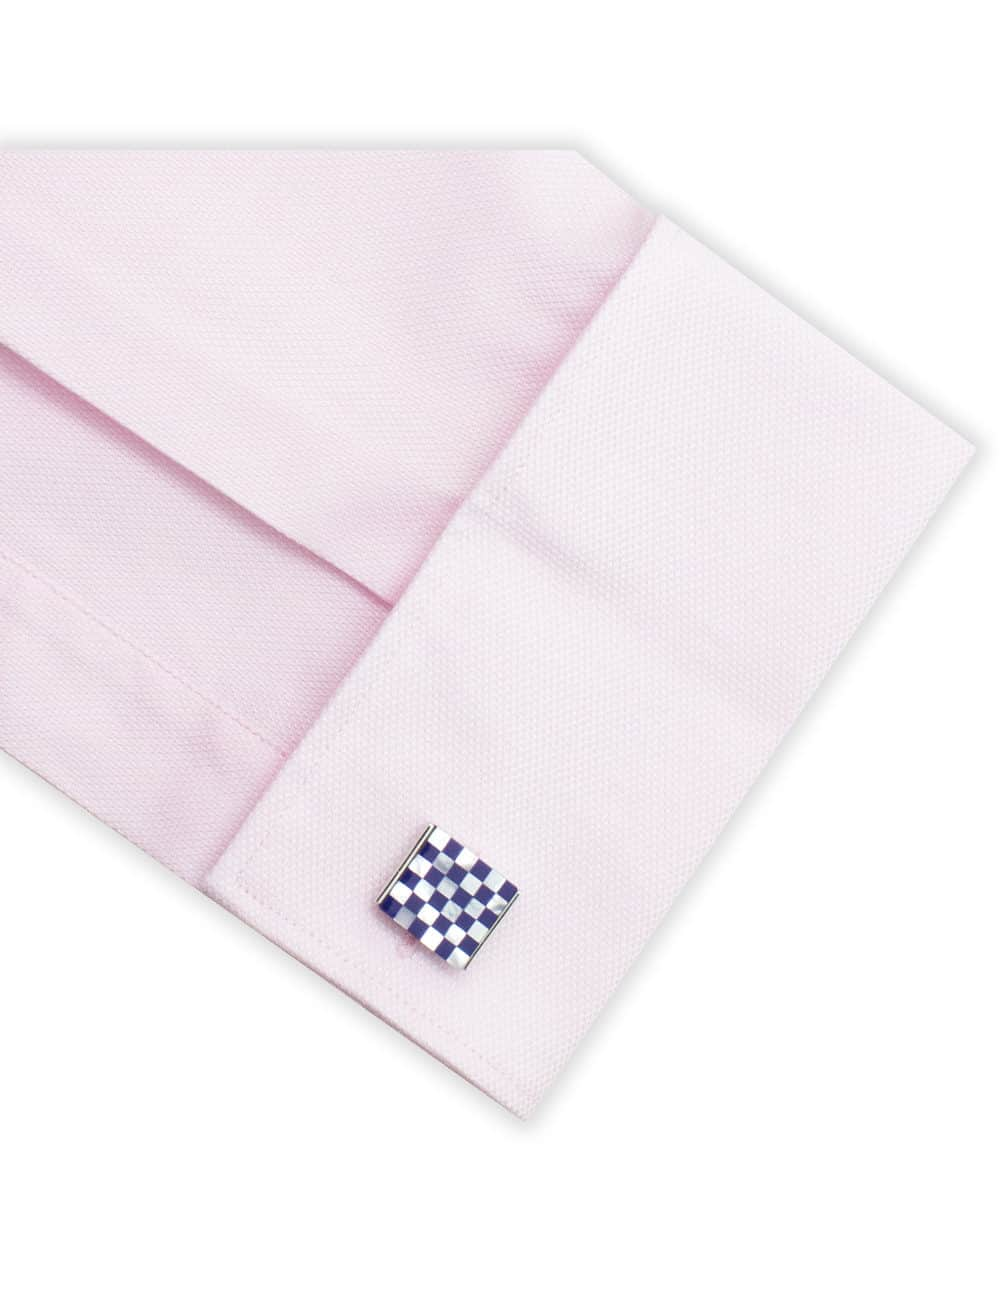 White Pearl and Blue Enamel Checks in Silver Square Cufflink C131FP-069